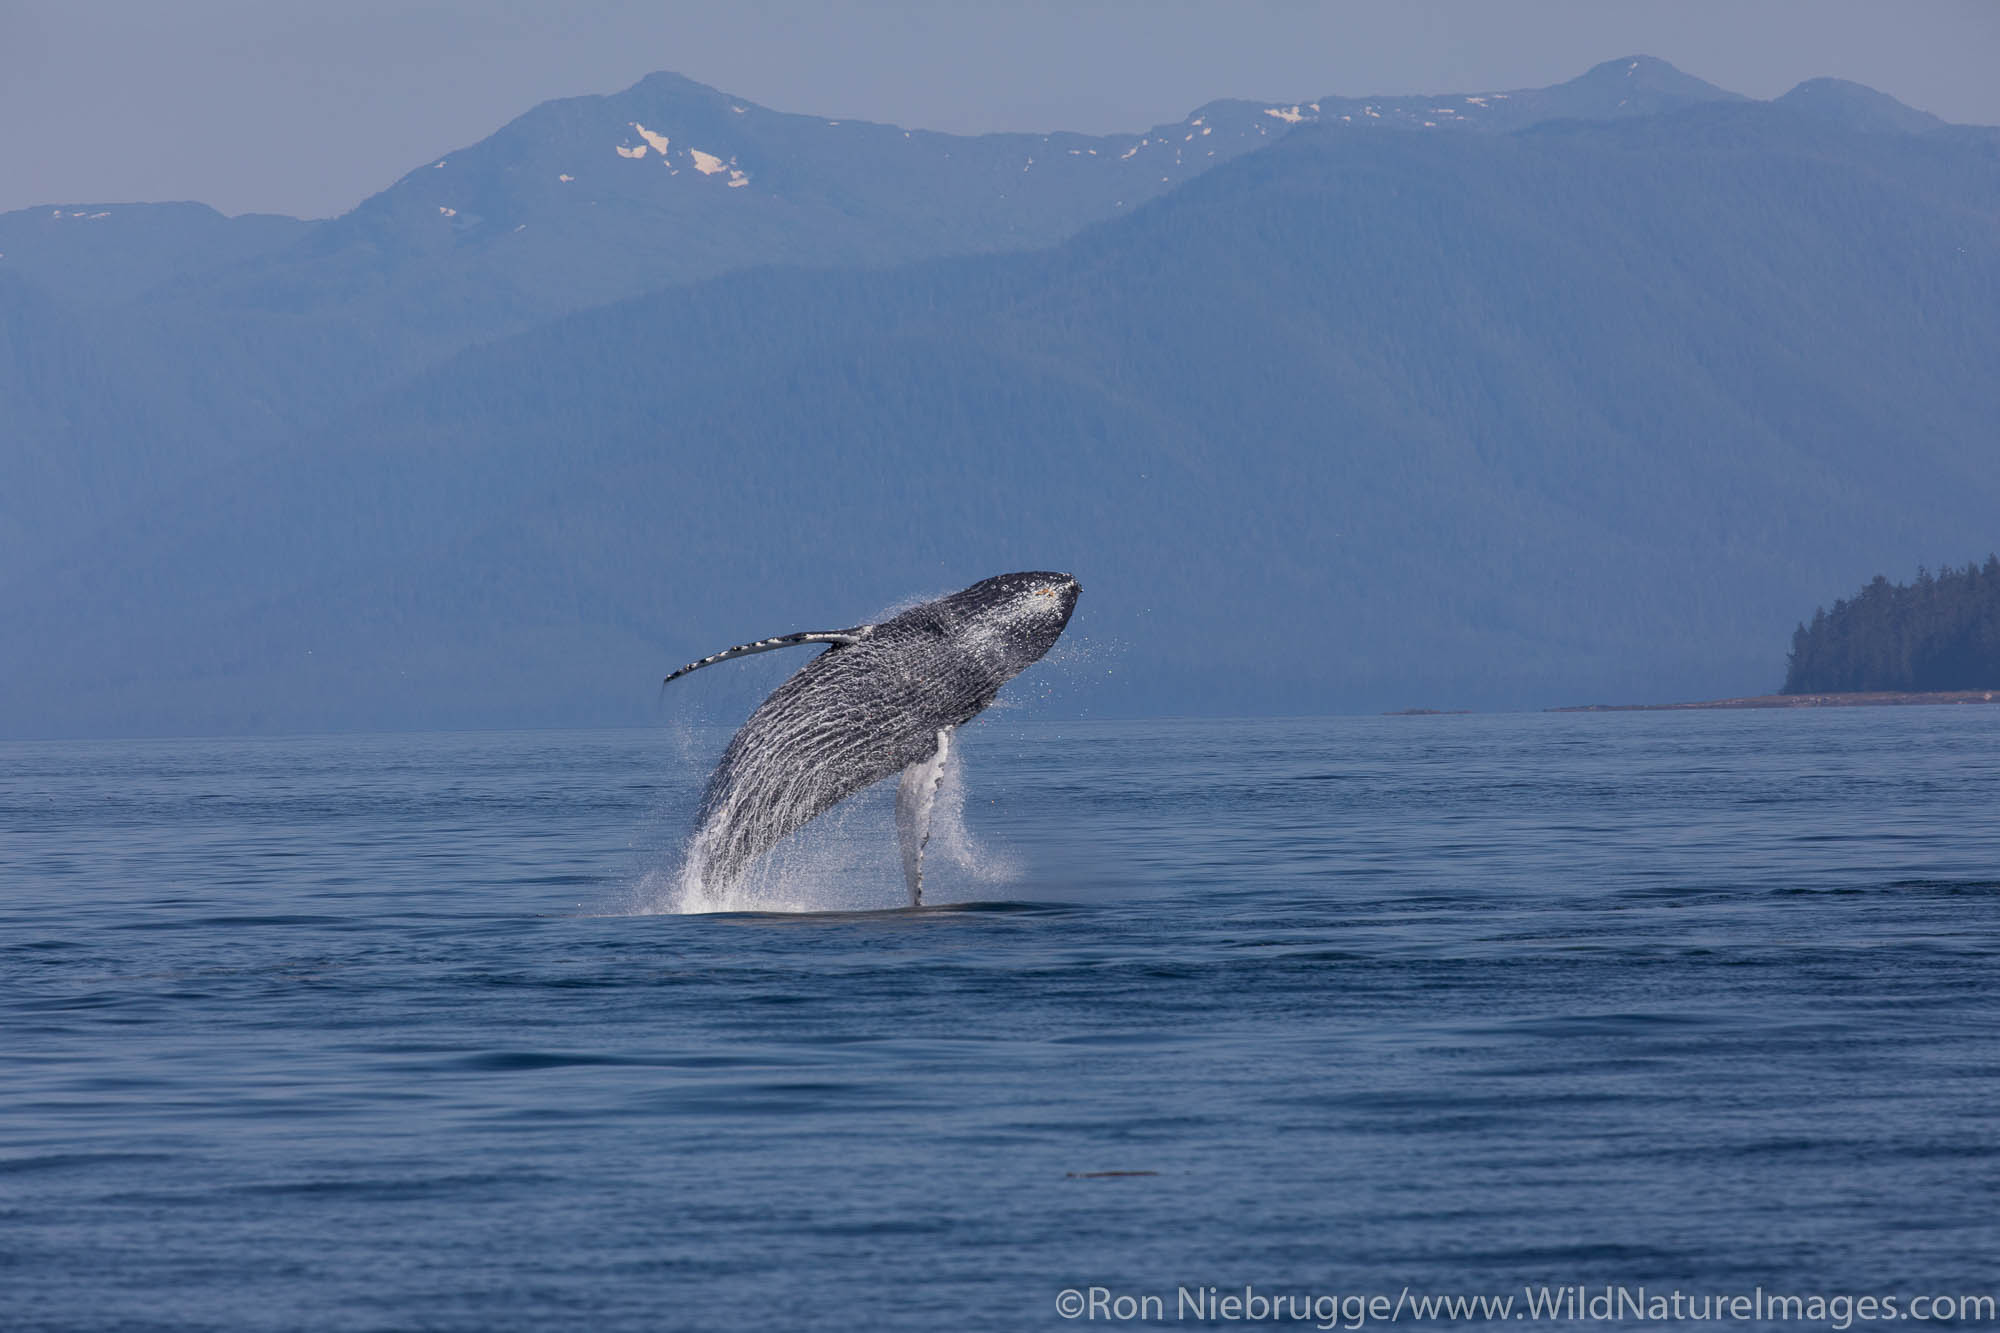 Breaching Humpback whale, Tongass National Forest, Alaska.